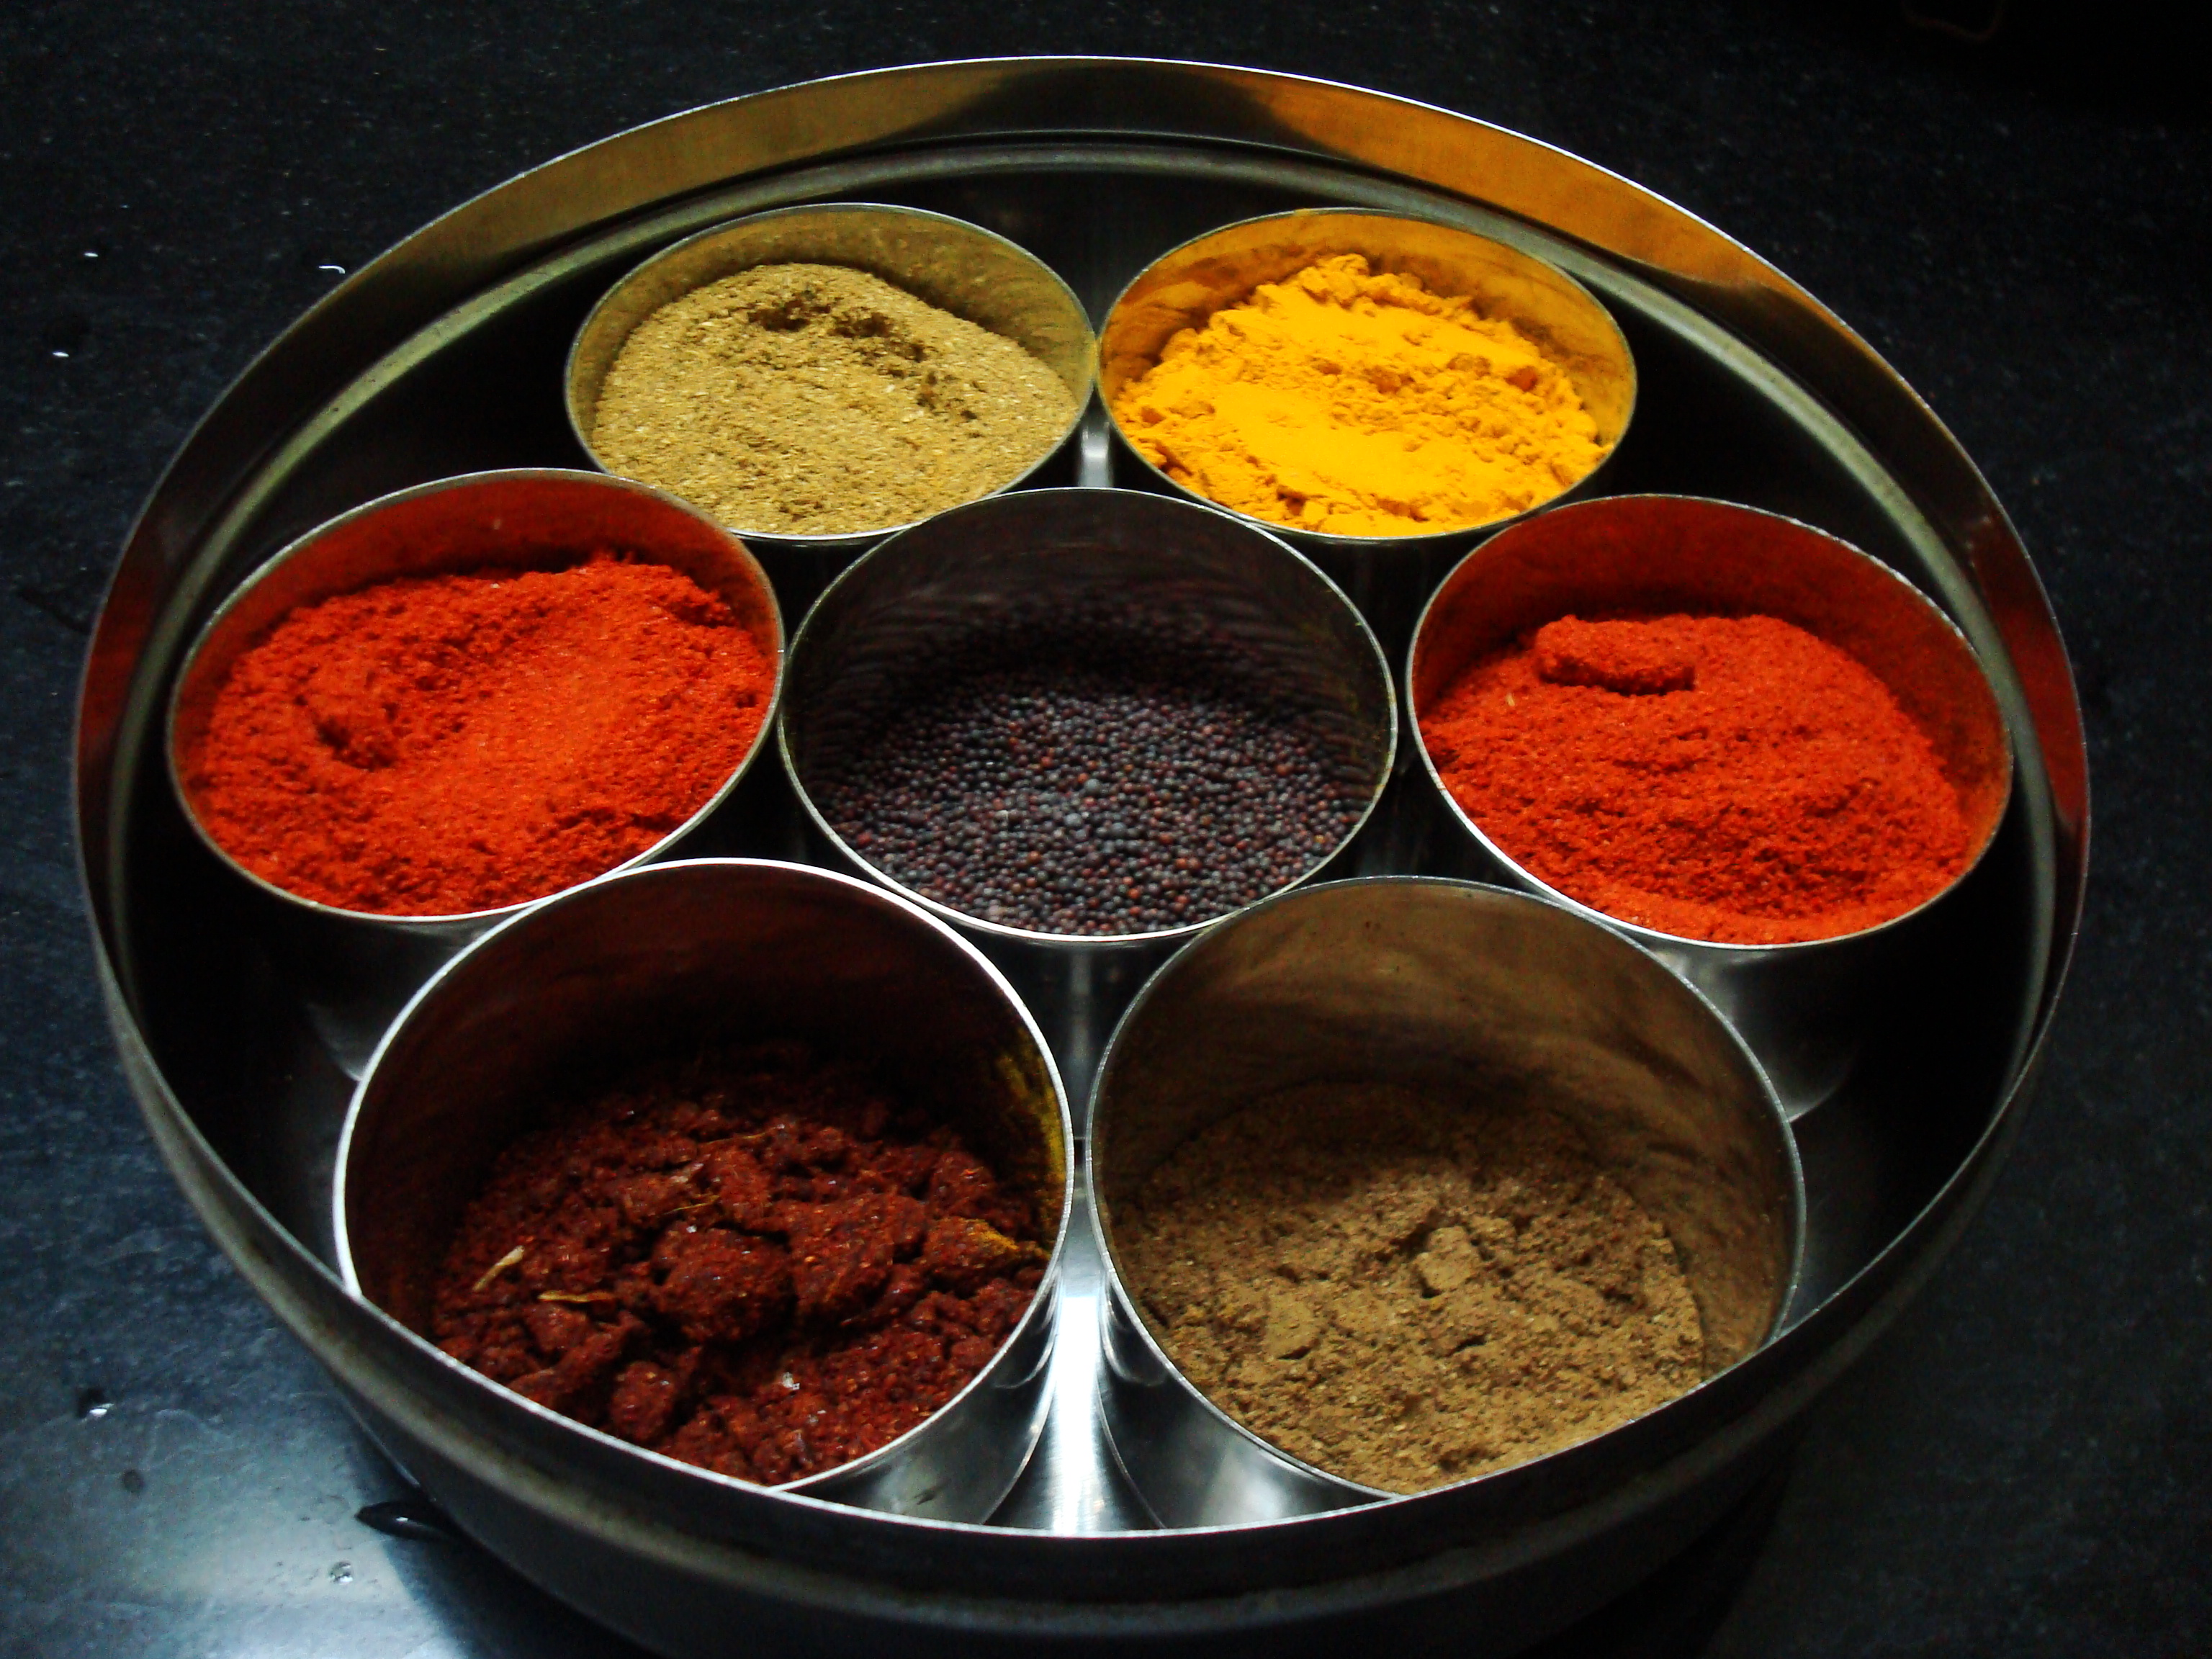 Turmeric & other spices